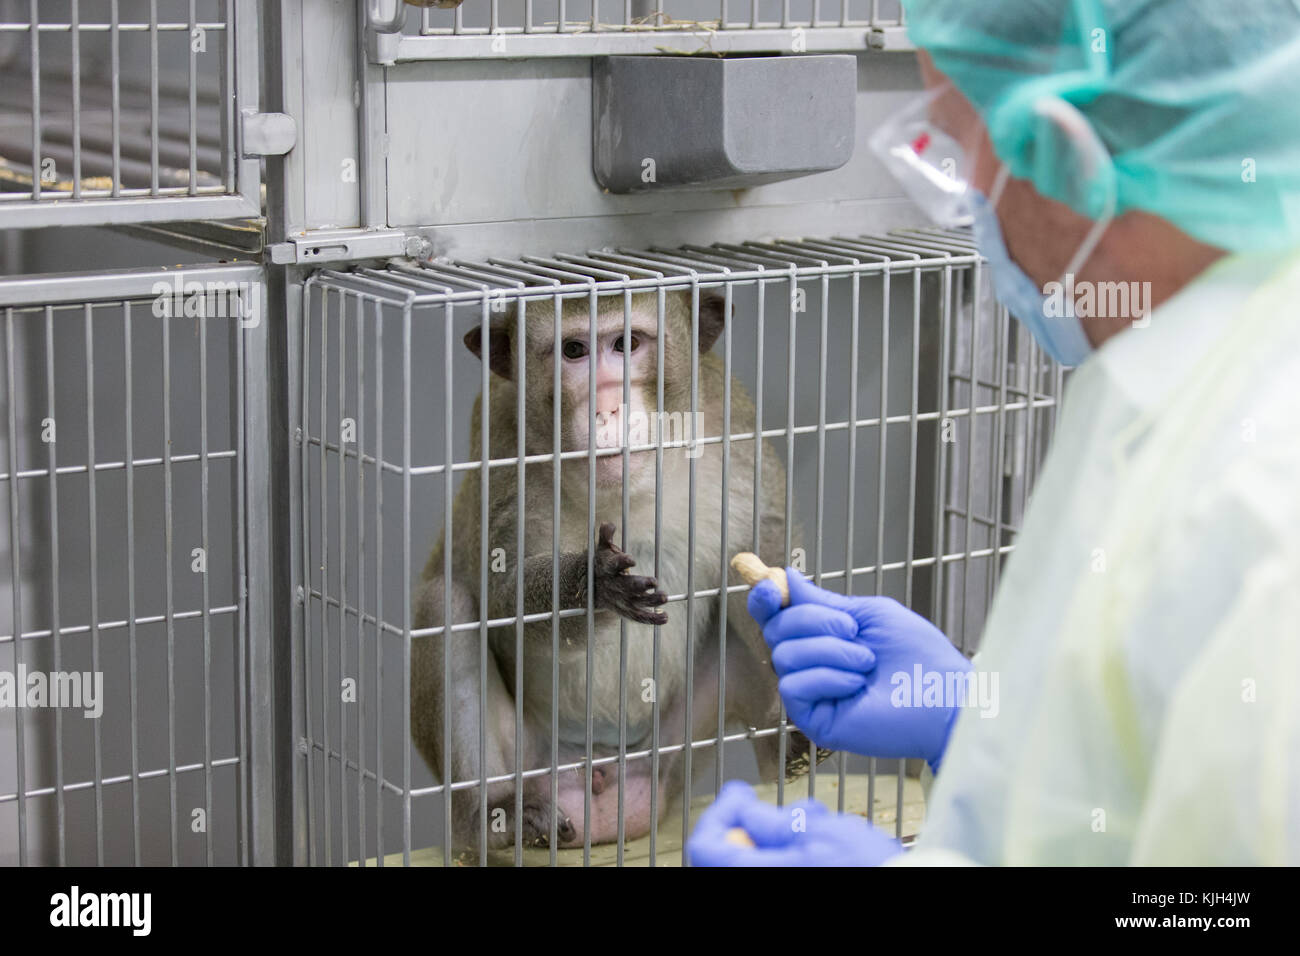 Muenster, Germany. 24th Nov, 2017. Prof. Dr. Stefan Schlatt from the Medical Faculty feeds a macaque through a cage - Stock Image